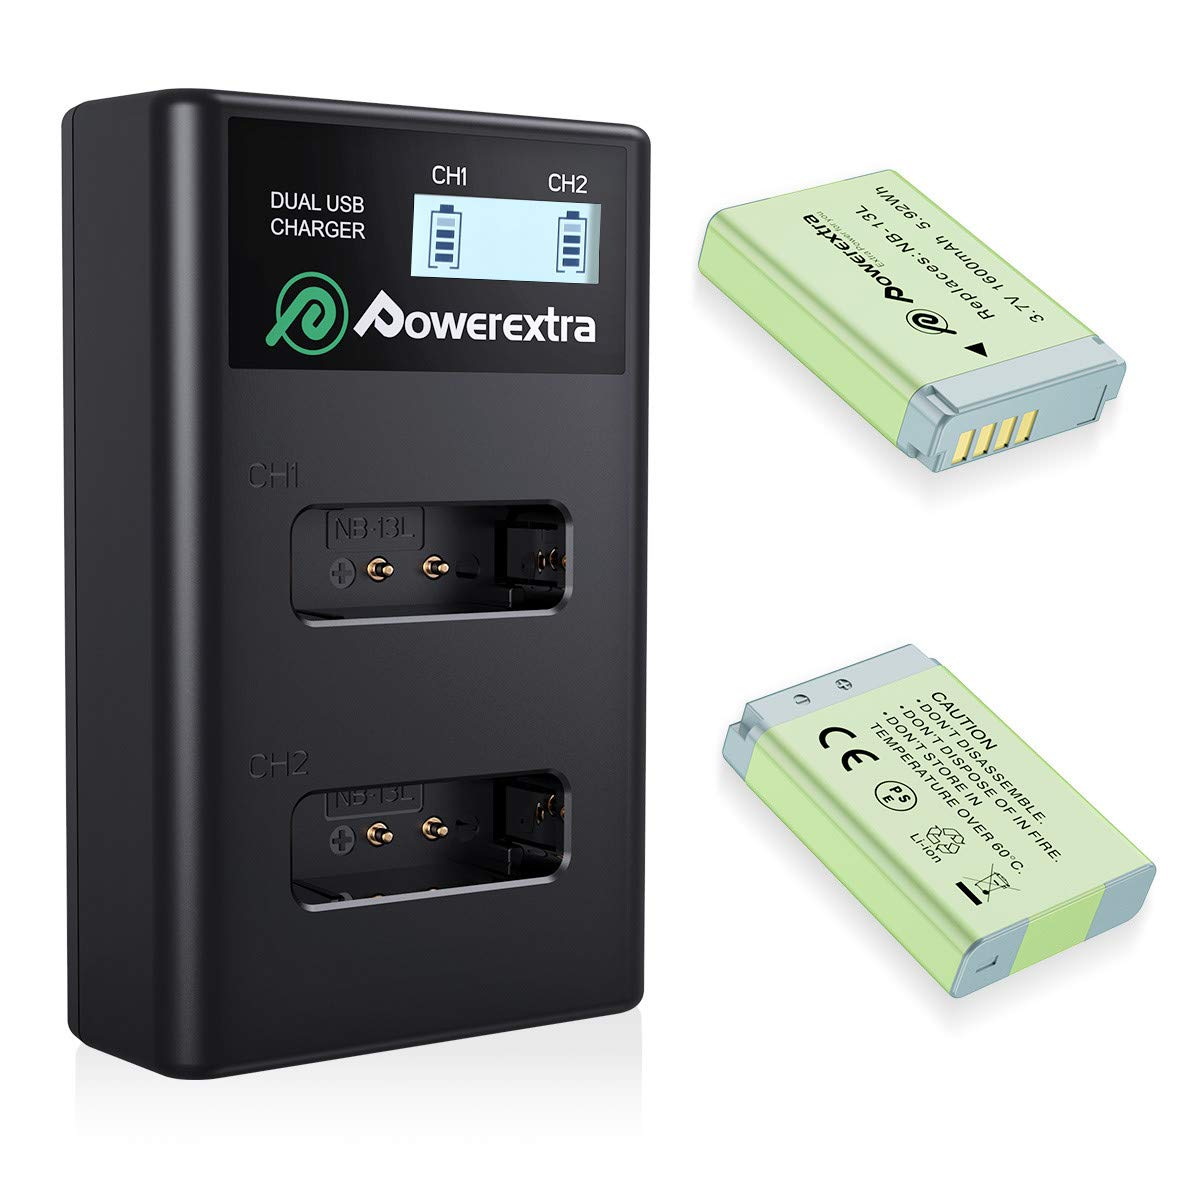 NB-13L Powerextra Battery Packs and USB Charger Set for Canon PowerShot SX720 HS, SX730 HS, SX740 HS, SX620 HS, G1 X Mark III, G5 X, G7 X, G7 X Mark II, G9 X, G9 X Mark II Cameras